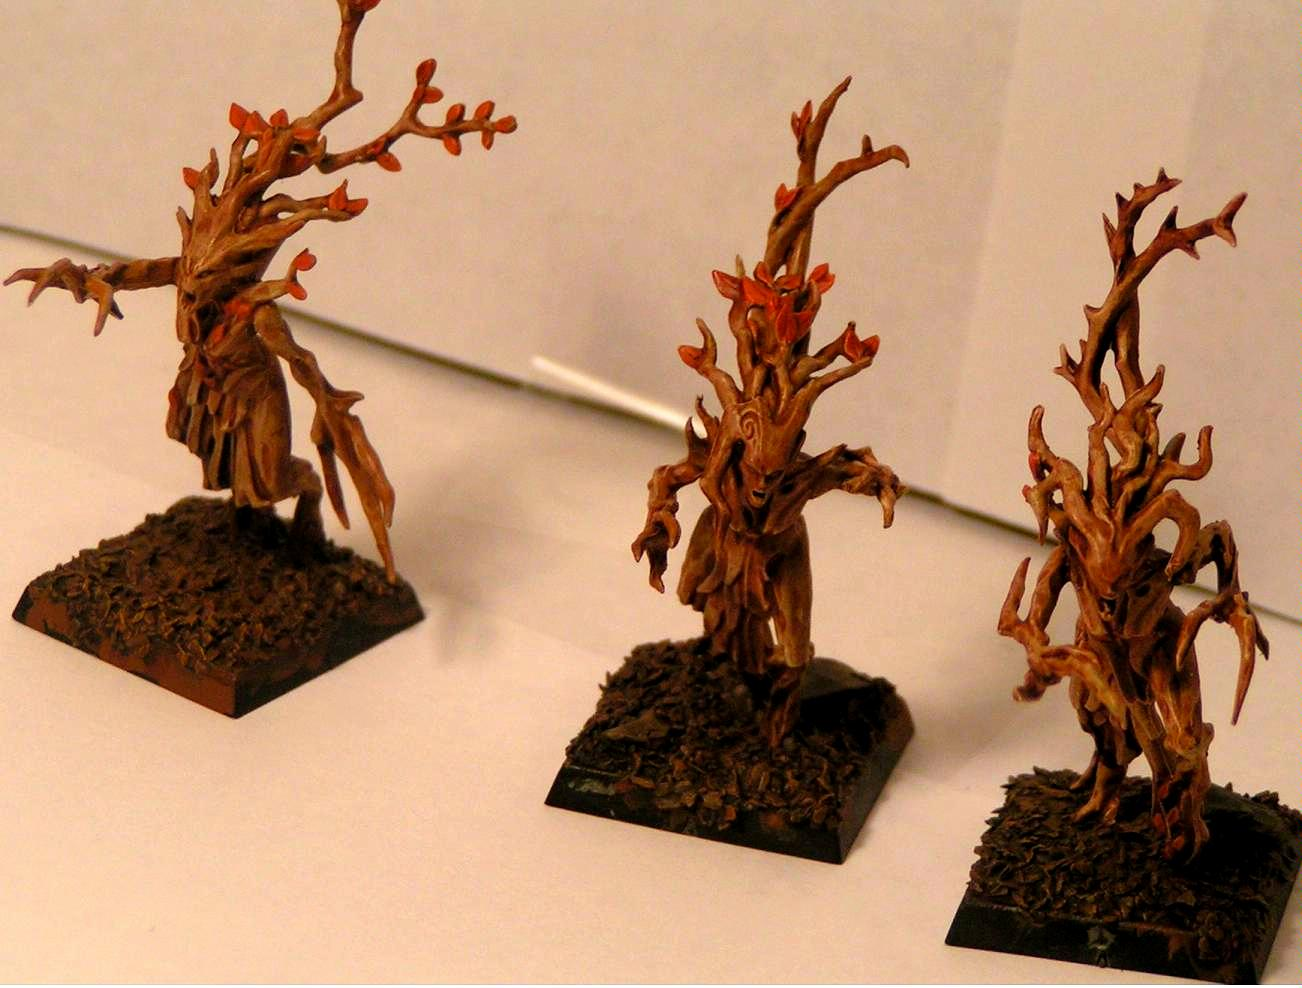 Dryads, Warhammer Fantasy, Wood Elves